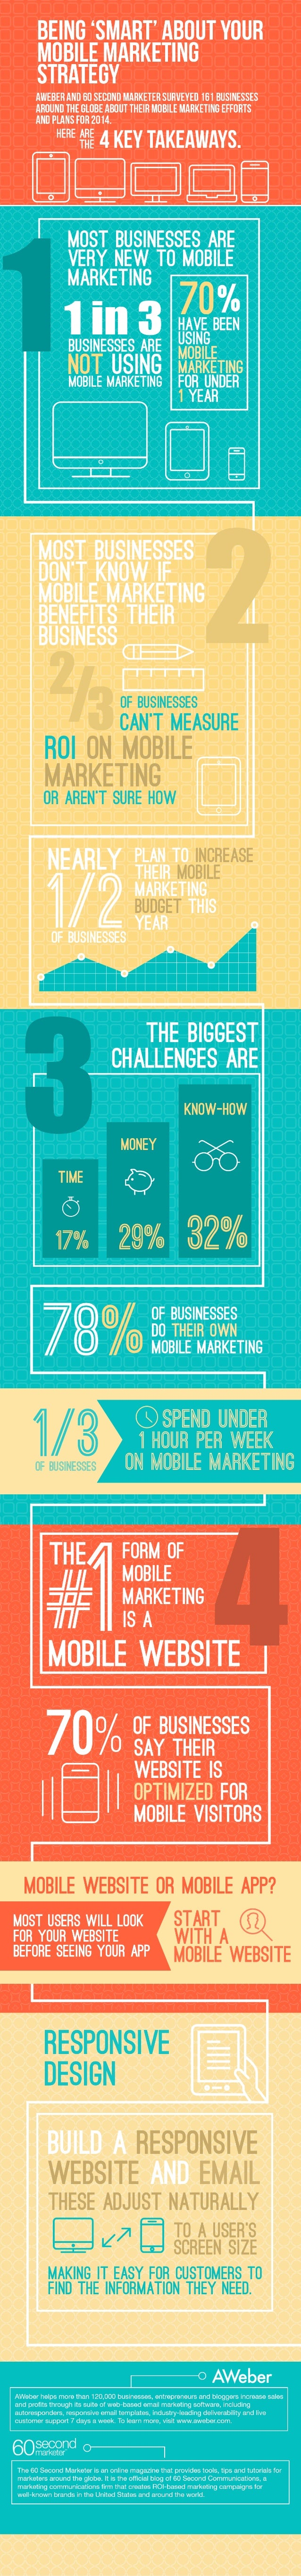 4 Things You Need to Know About Mobile Marketing in 2014 (Infographic)